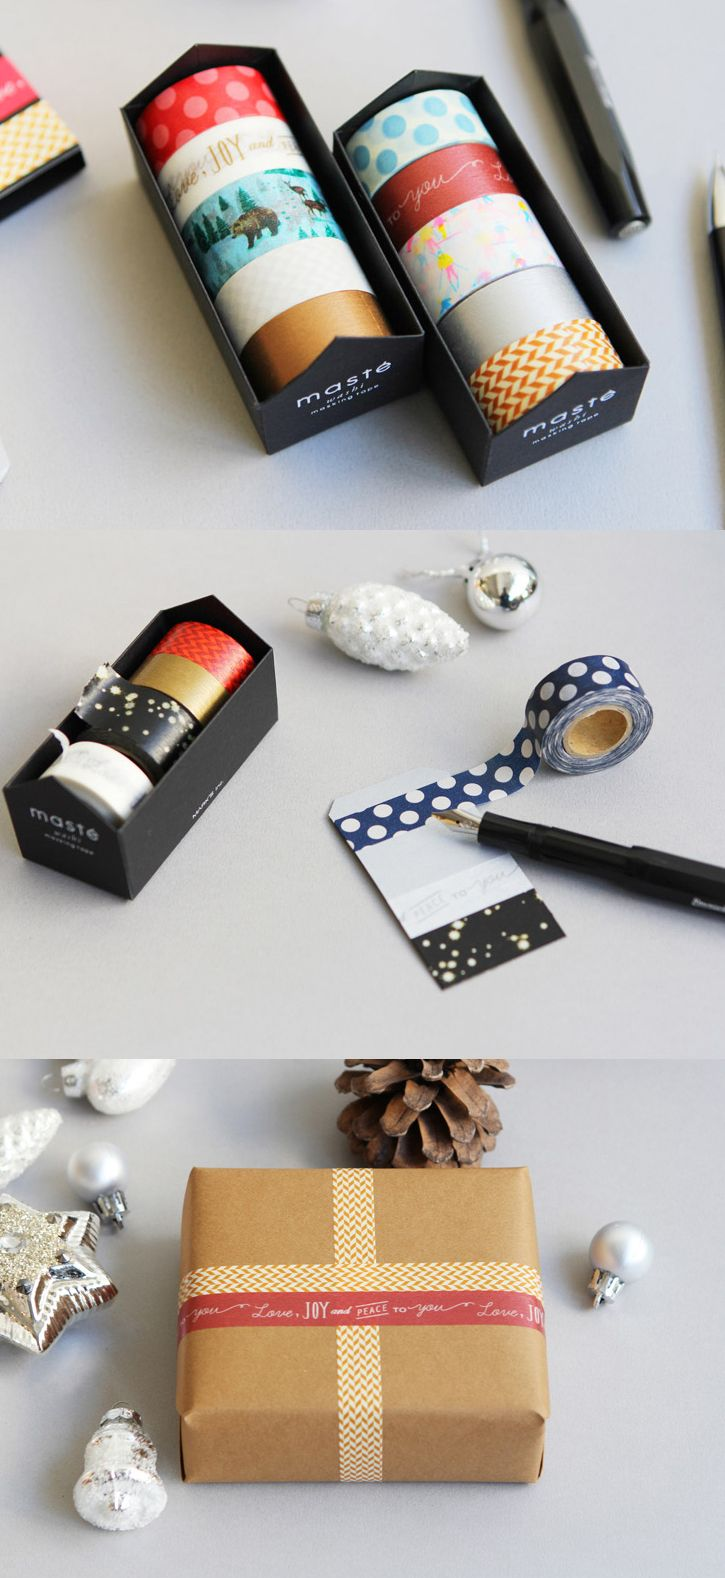 This Winter Collection Masking Tape Set includes 5 delightful masking tapes that will turn anything festive!